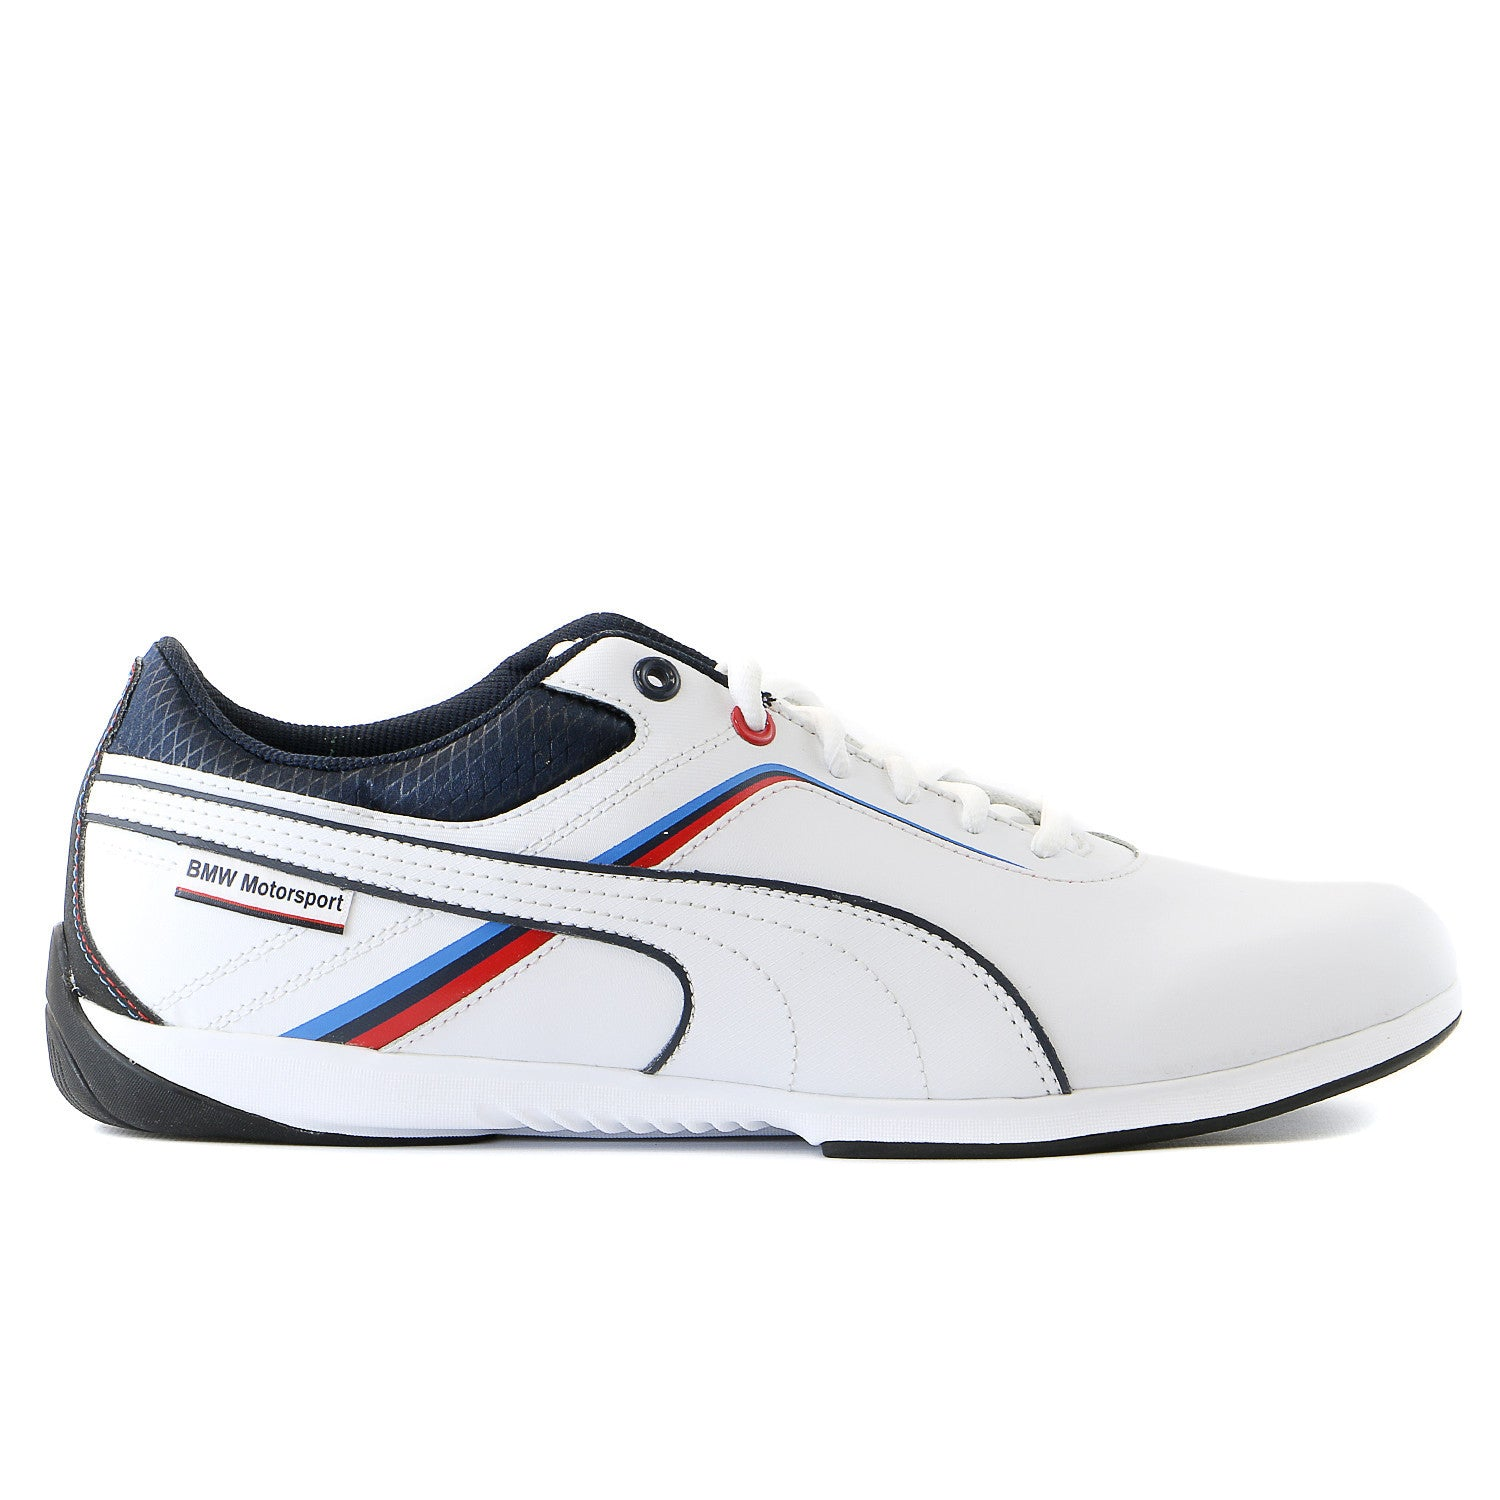 5303e3a789a11 Puma BMW Ignite Men s driving shoes - Navy Blue White - Mens ...